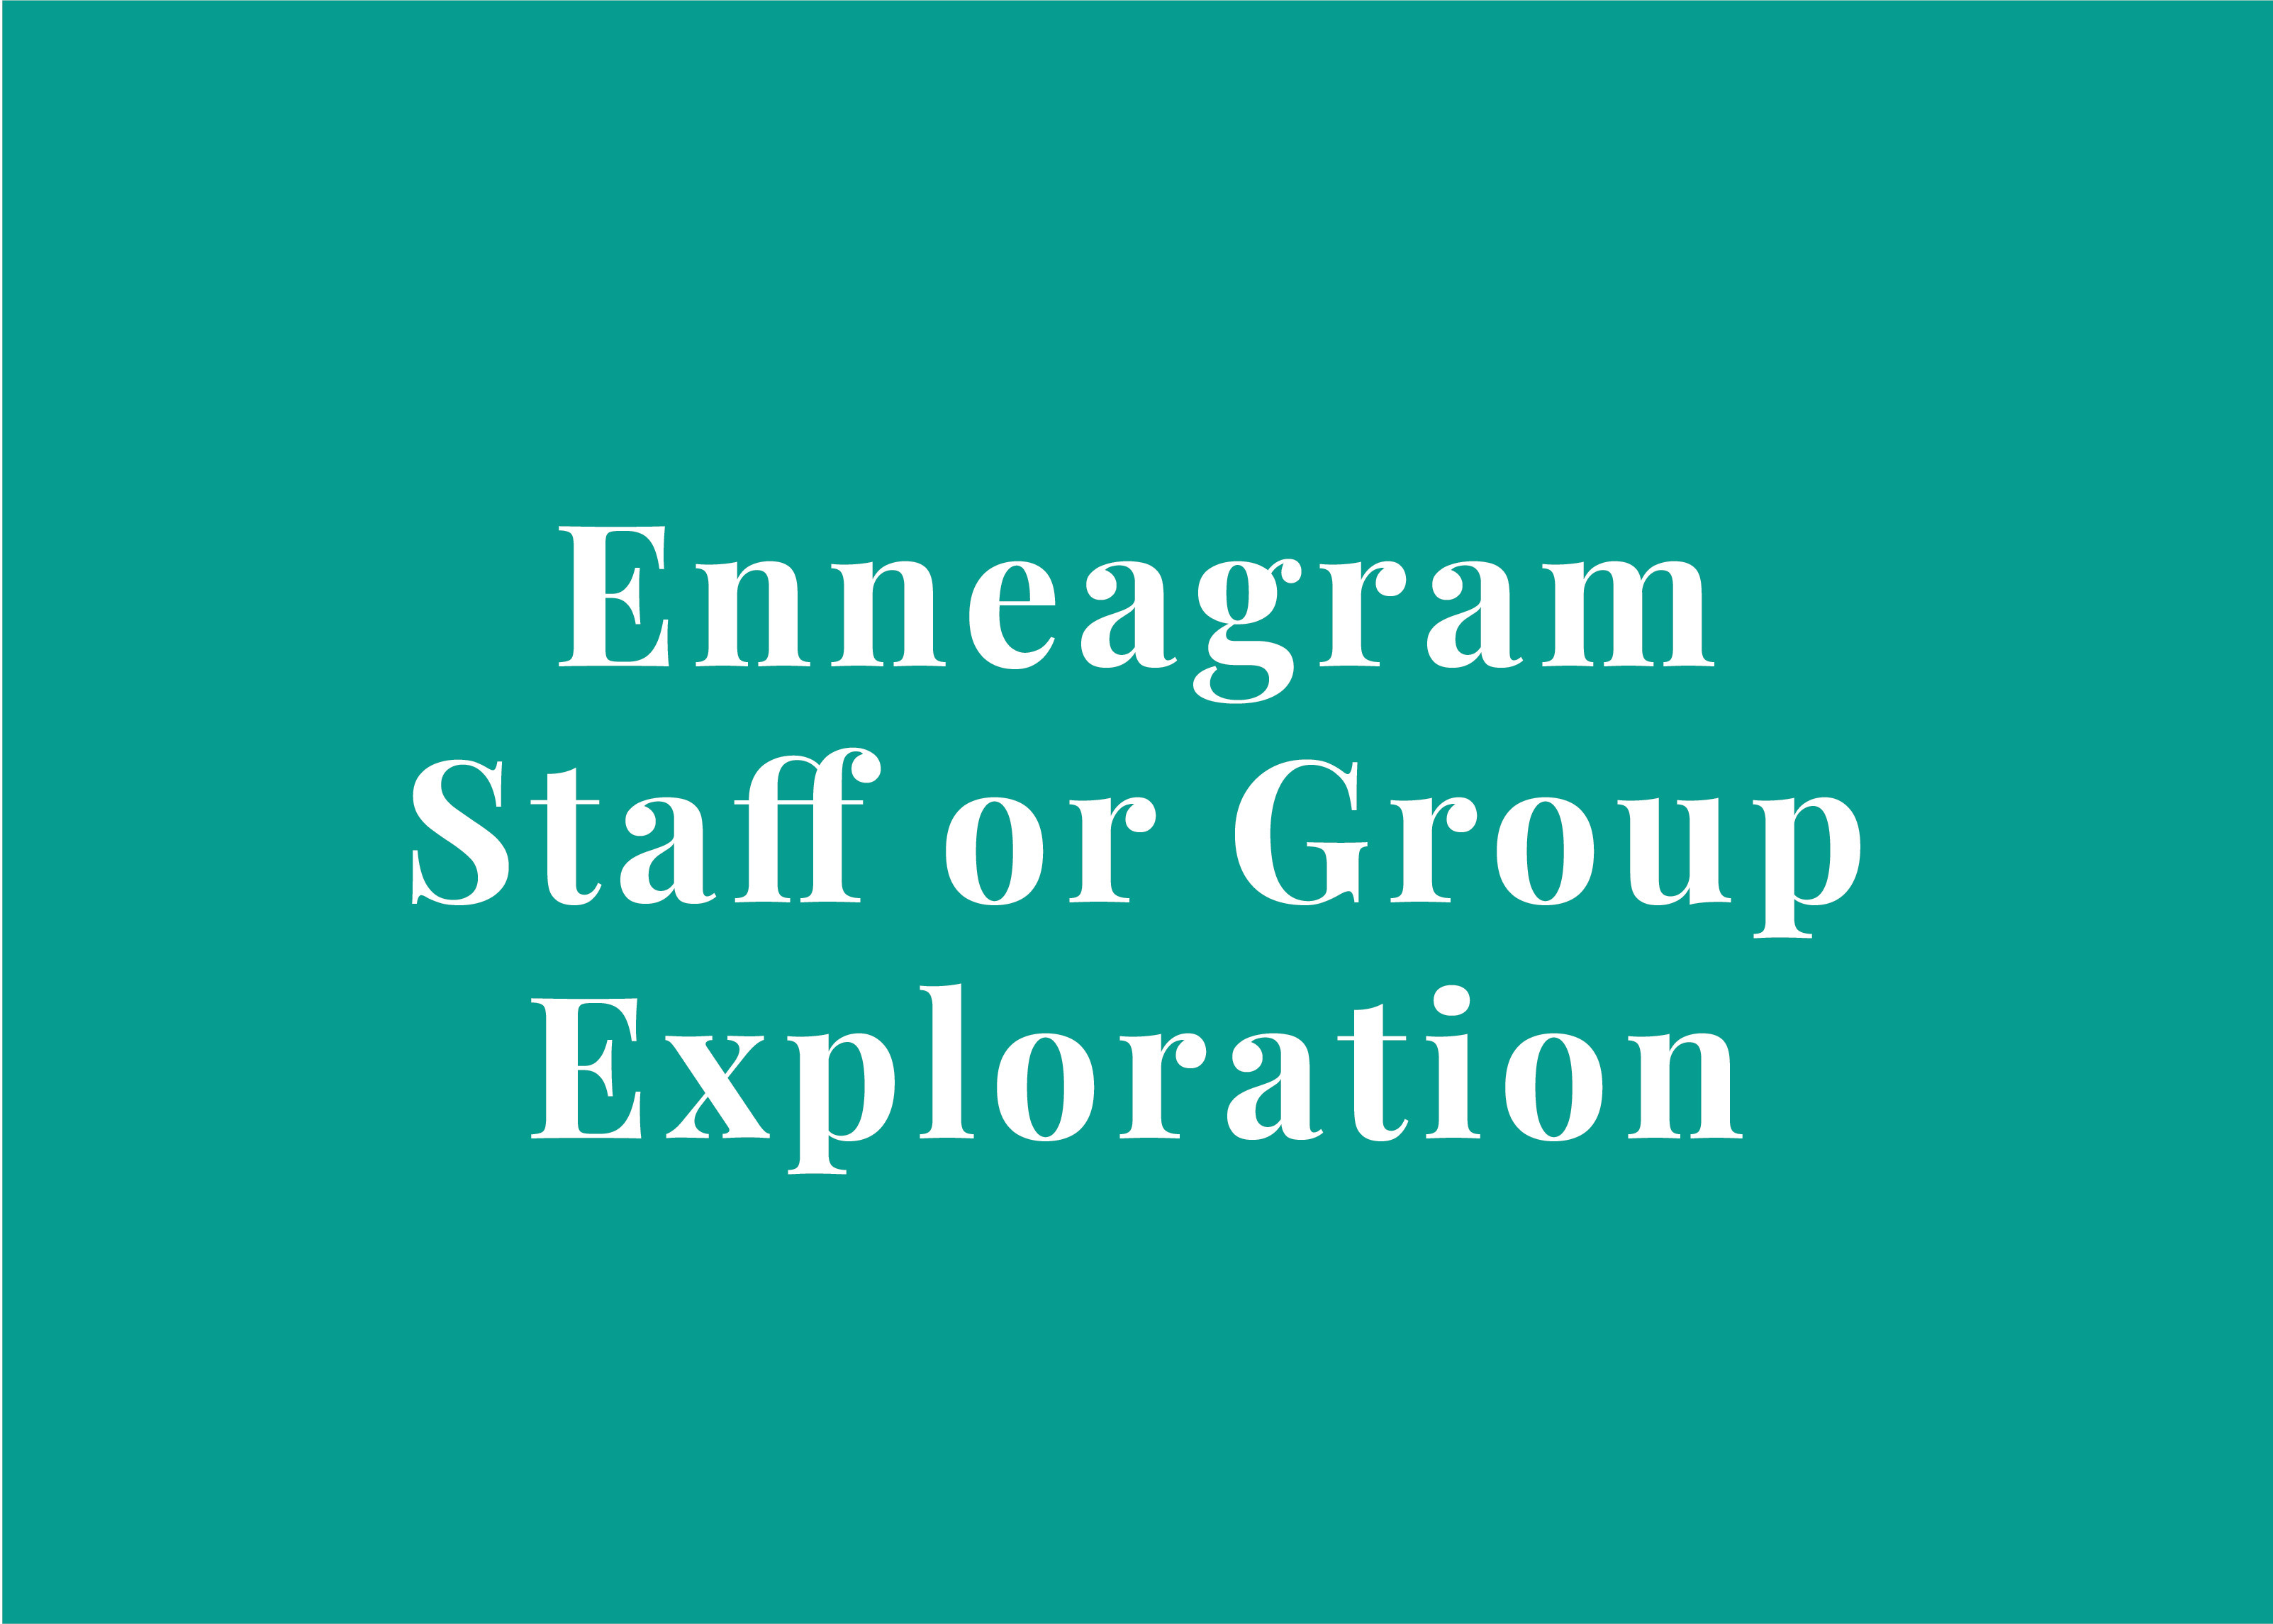 Enneagram Staff or Group Exploration